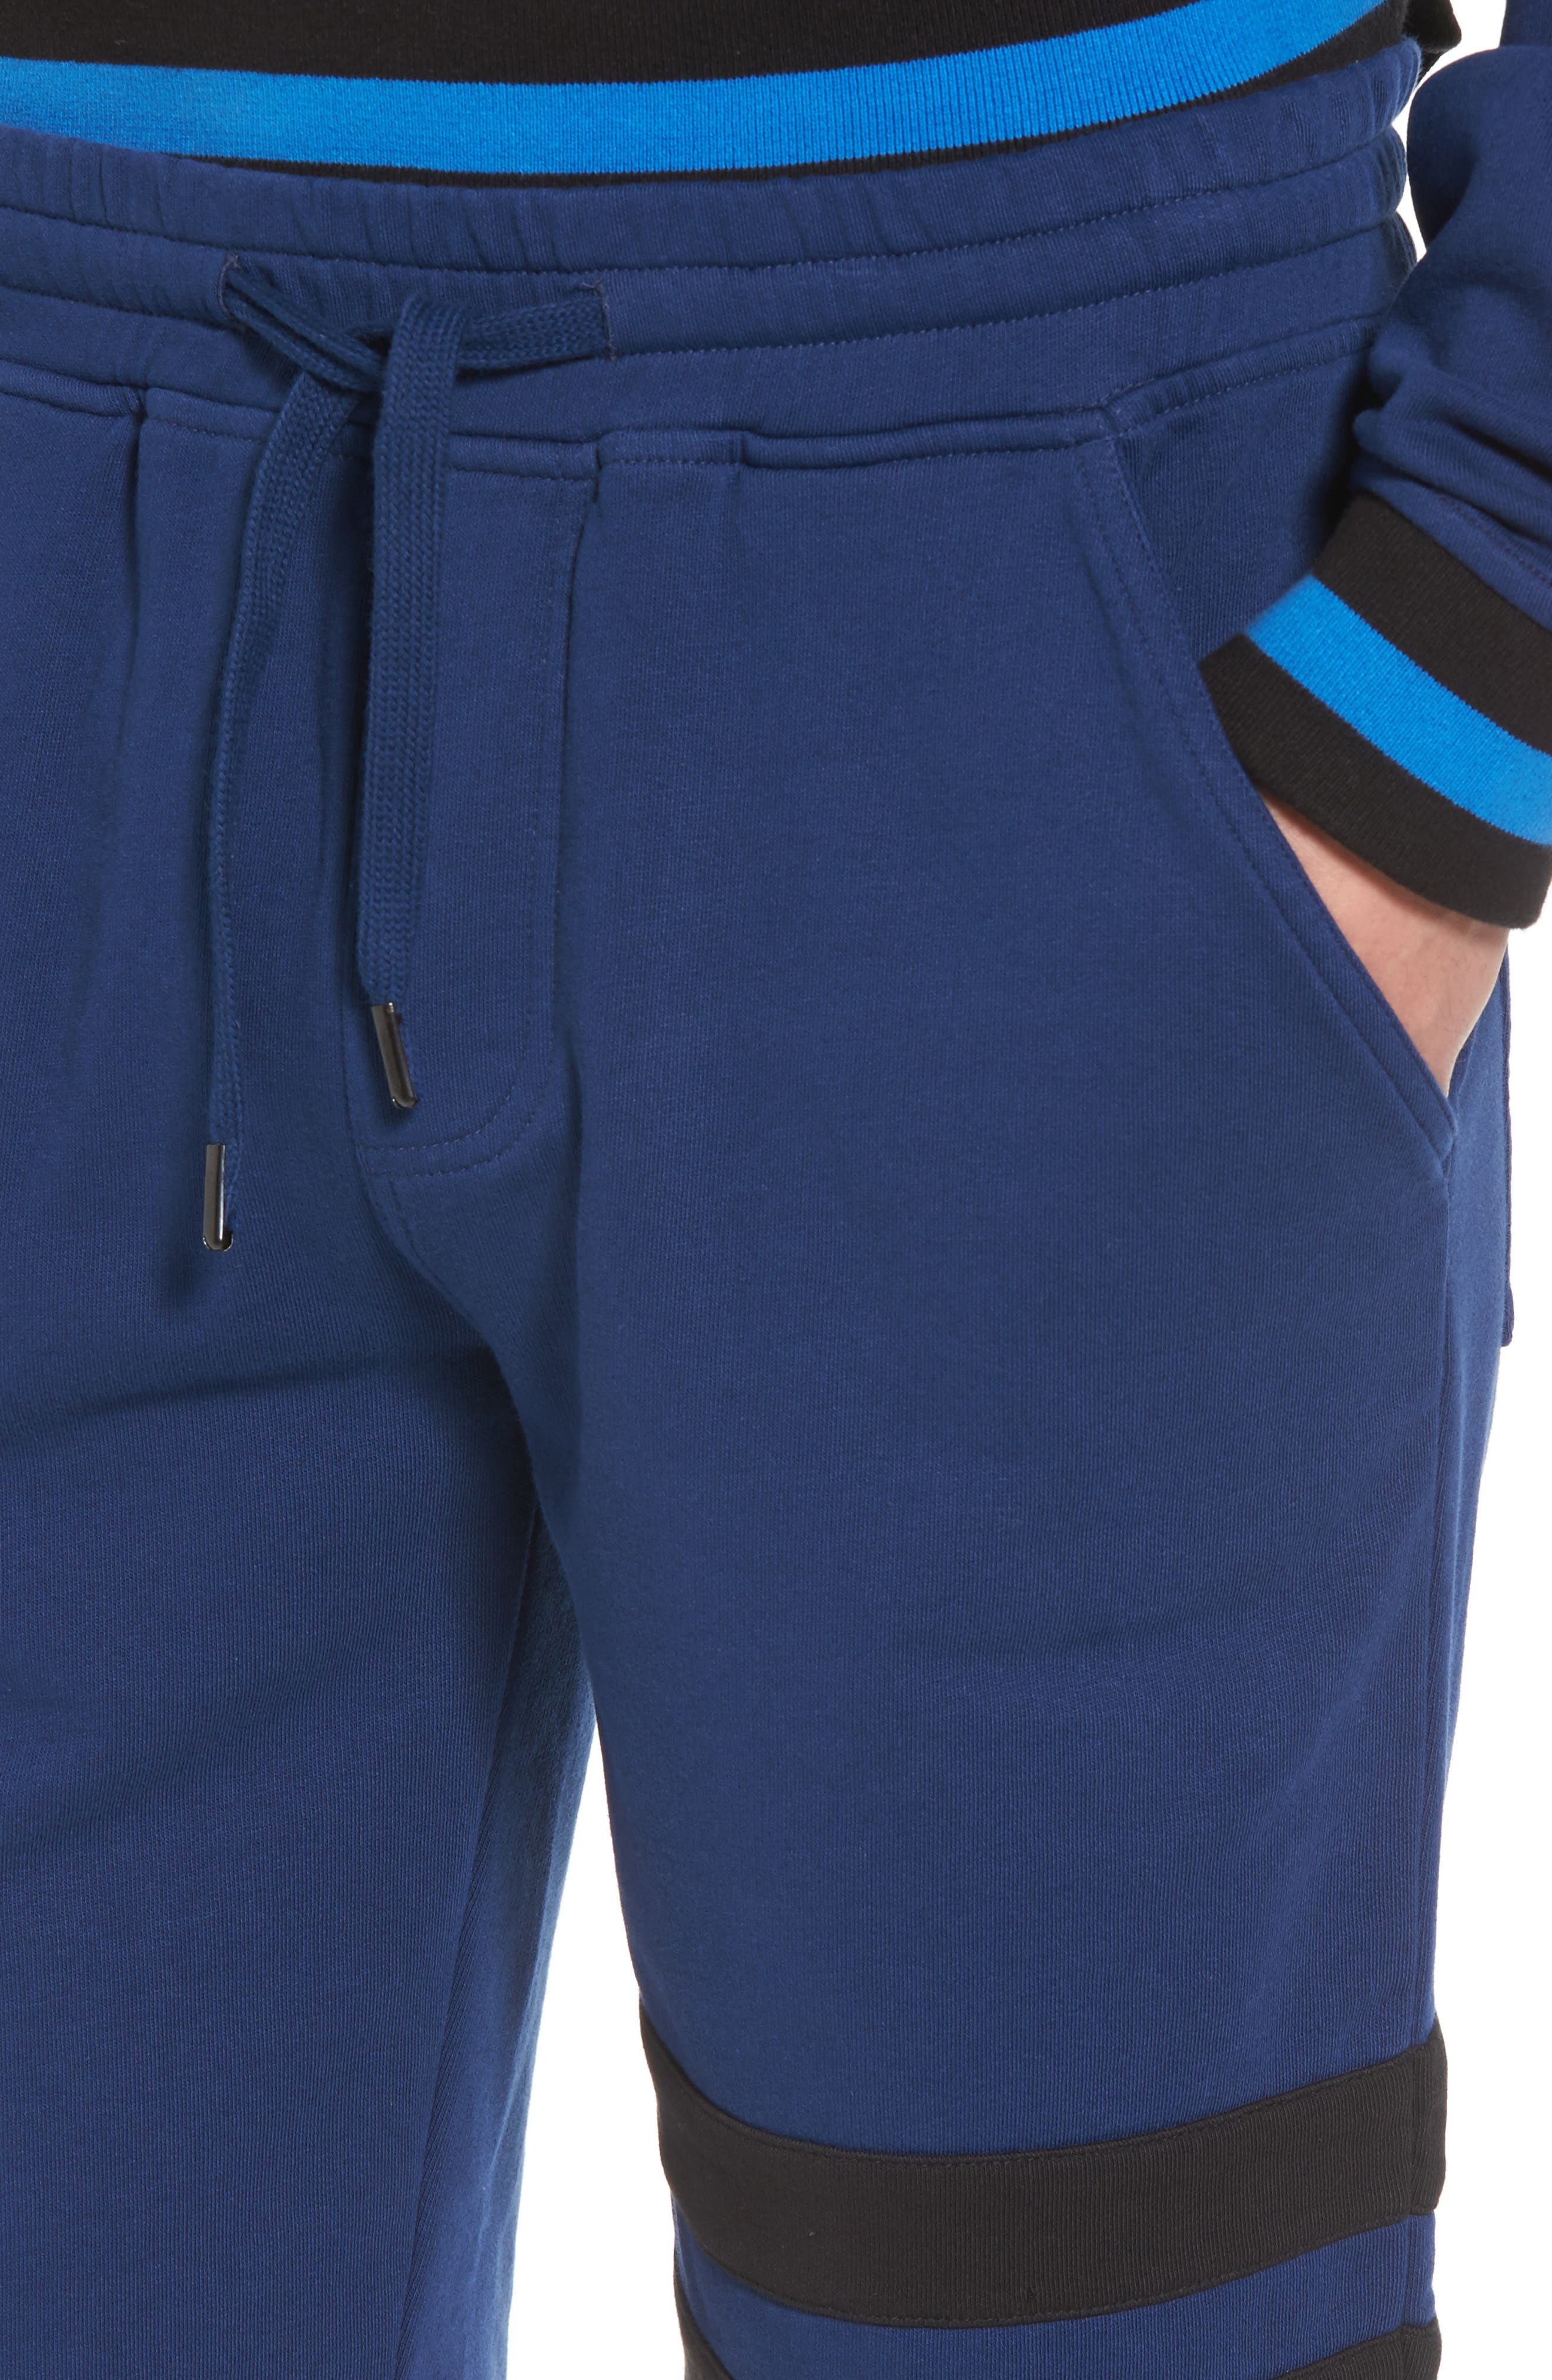 Stripe Athletic Shorts,                             Alternate thumbnail 4, color,                             Night Rider